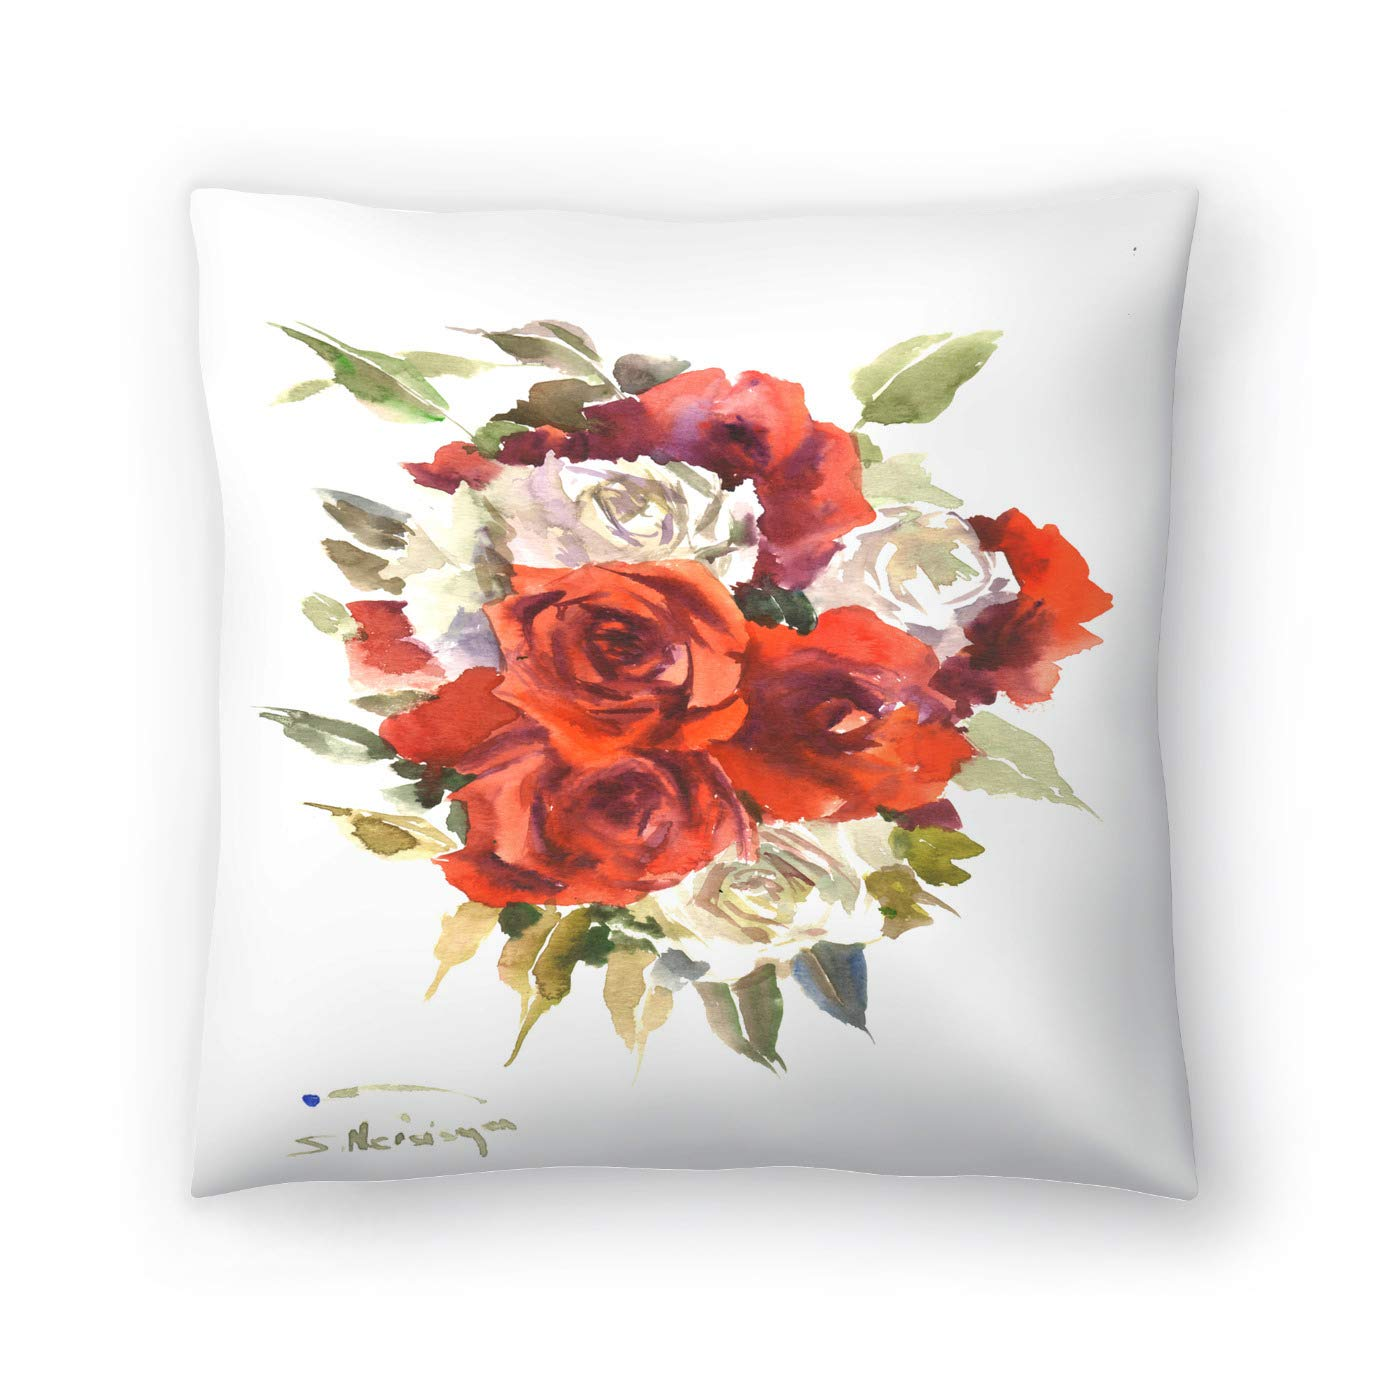 Buy American Flat Red And White Roses Pillow By Suren Nersisyan 20 X 20 Online At Low Prices In India Amazon In